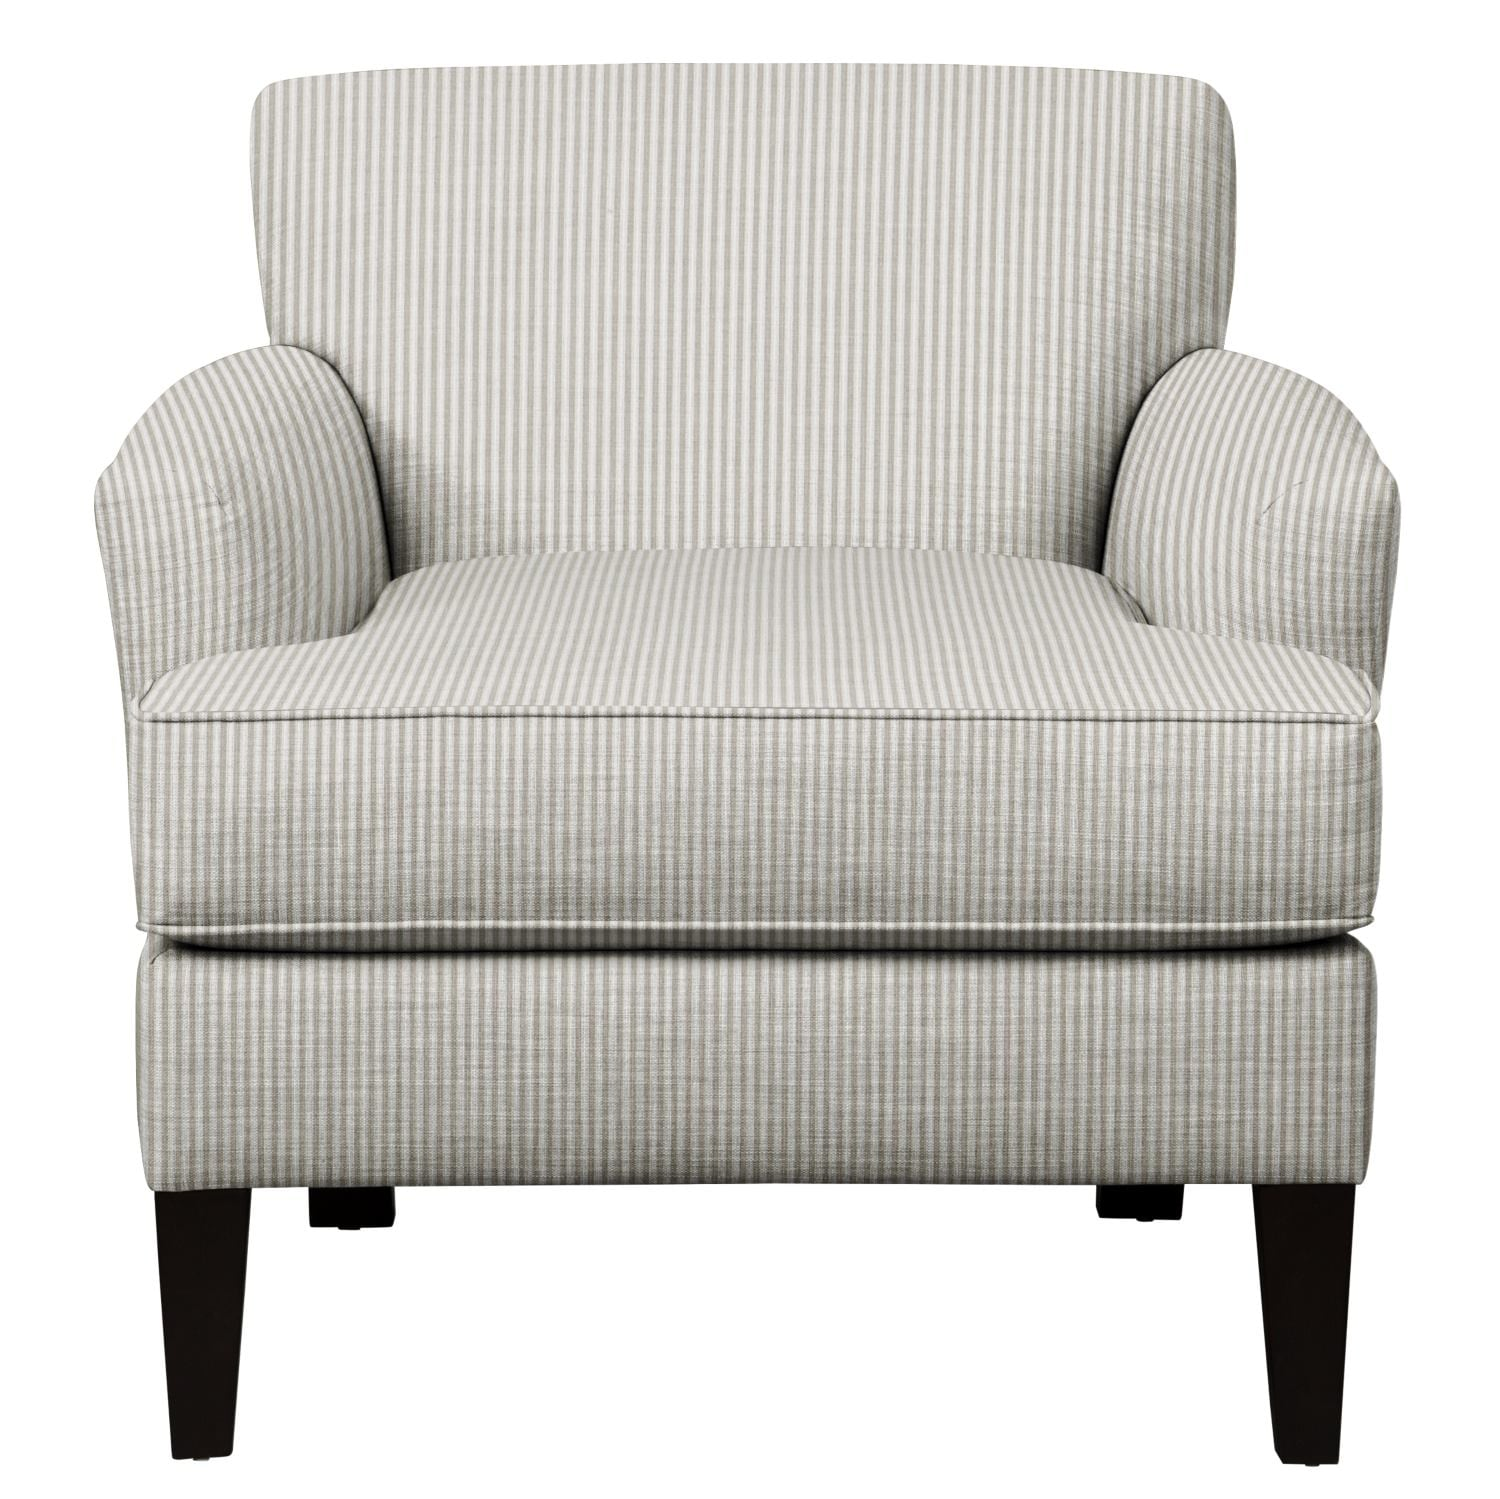 Living Room Furniture - Marcus Chair w/ Polo Storm Fabric